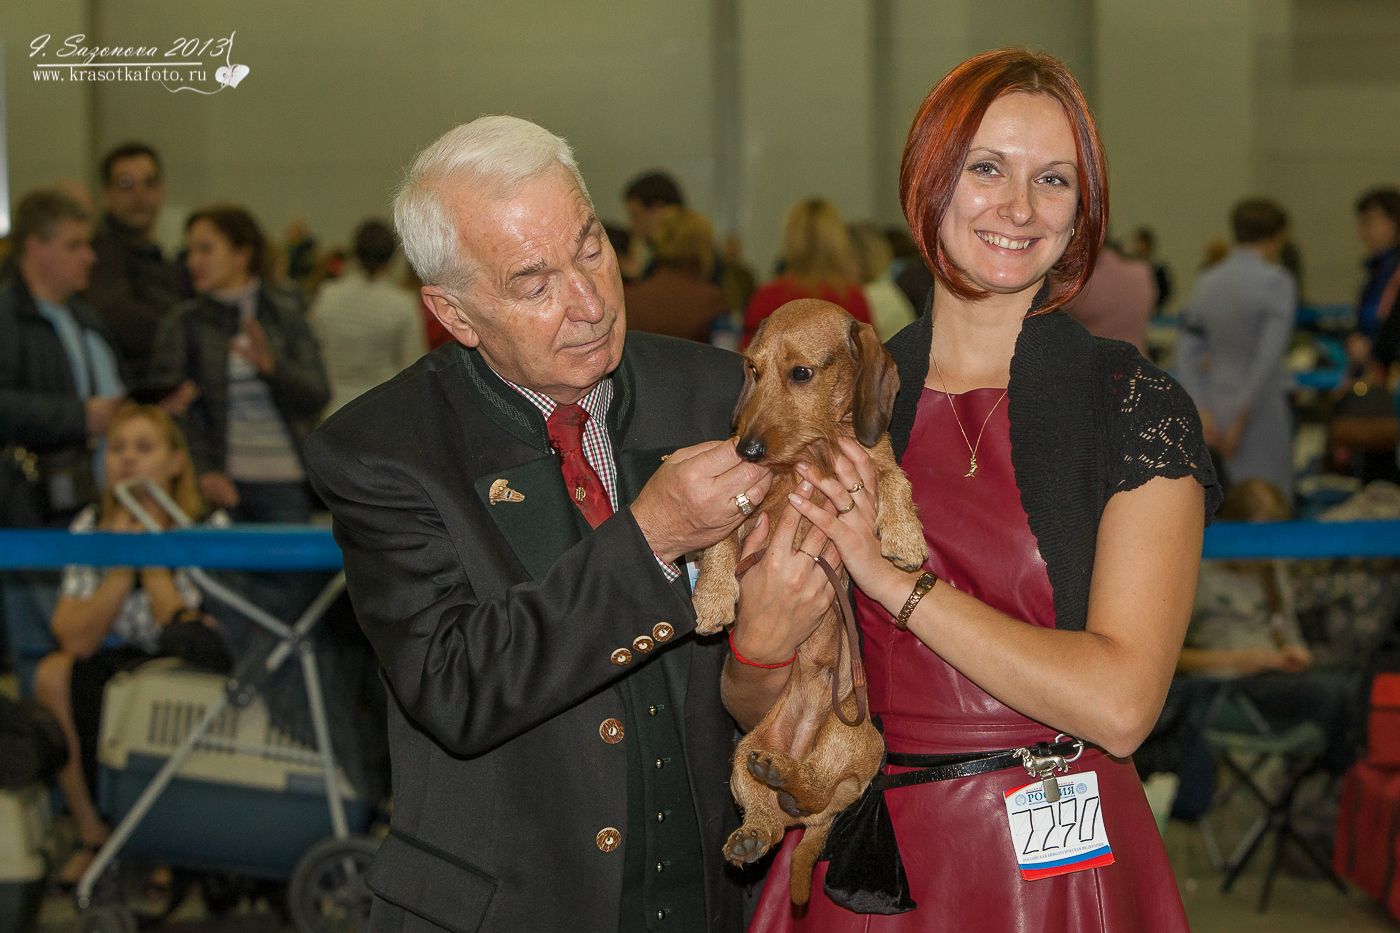 Dachs Design World for Us and Irina Hapaeva, his handler.